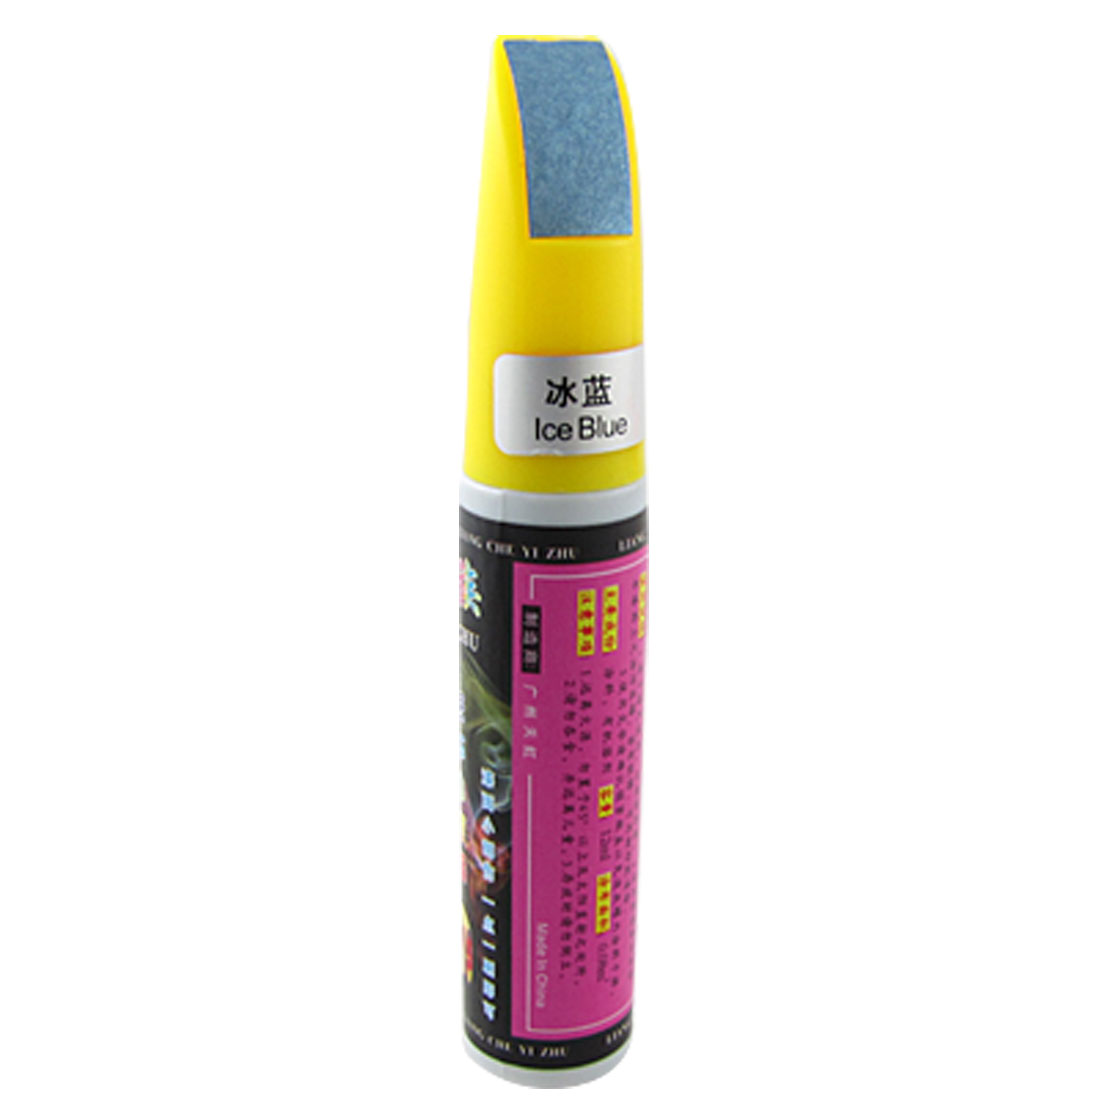 Ice Blue 12ml Scratches Touch up Paint Pen for Car Vehicle